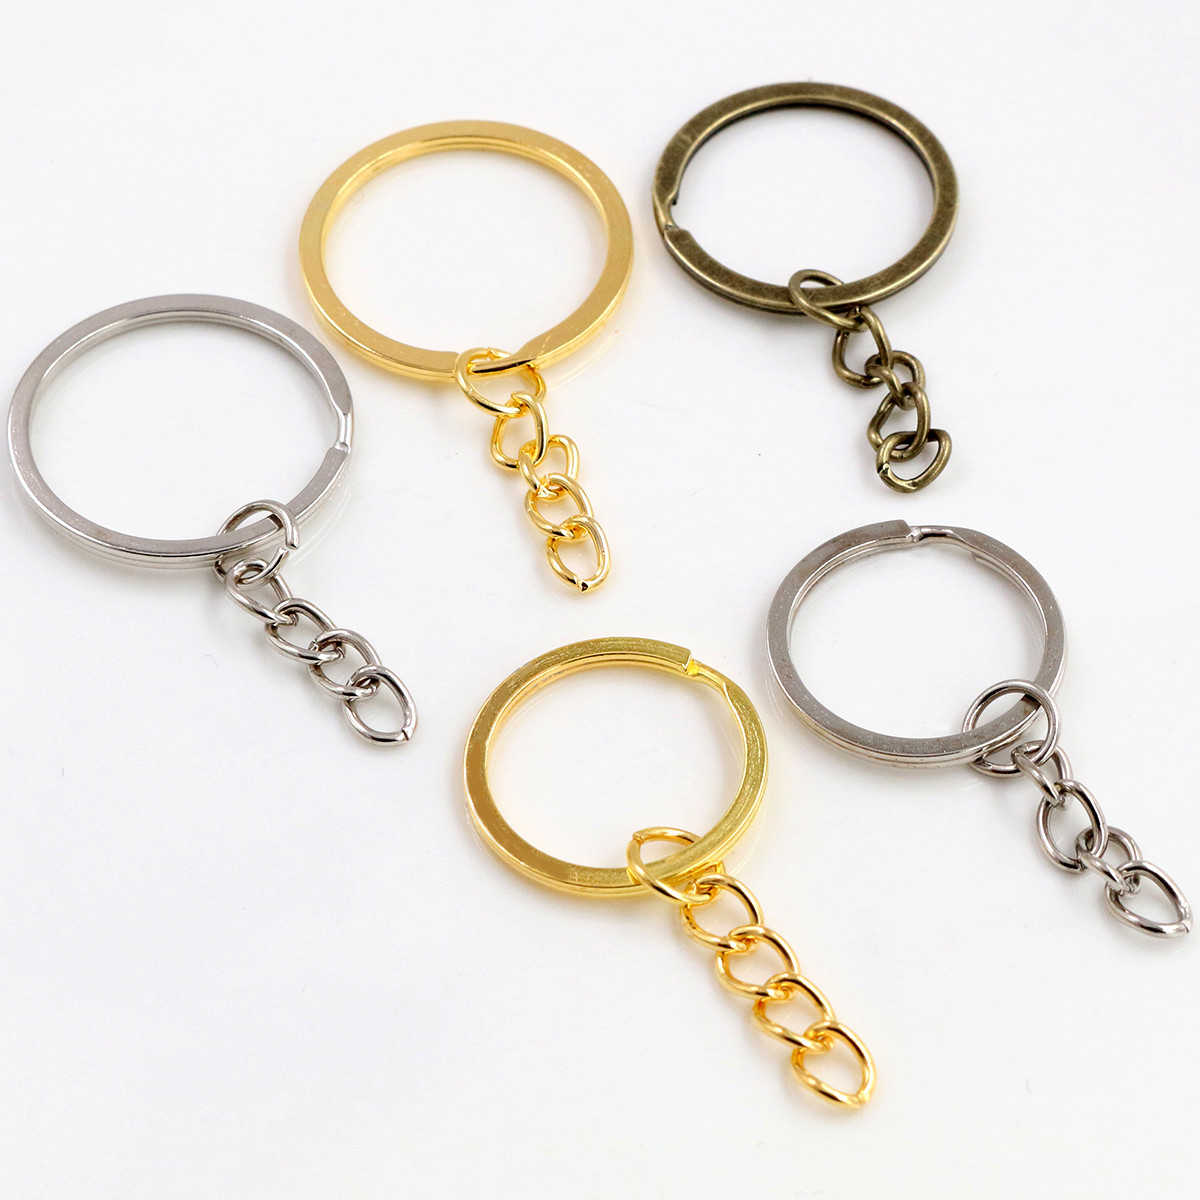 20 pcs/lot Key Ring Key Chain 3 Colors Plated 50mm Long Round Split Keychain Keyrings Wholesale